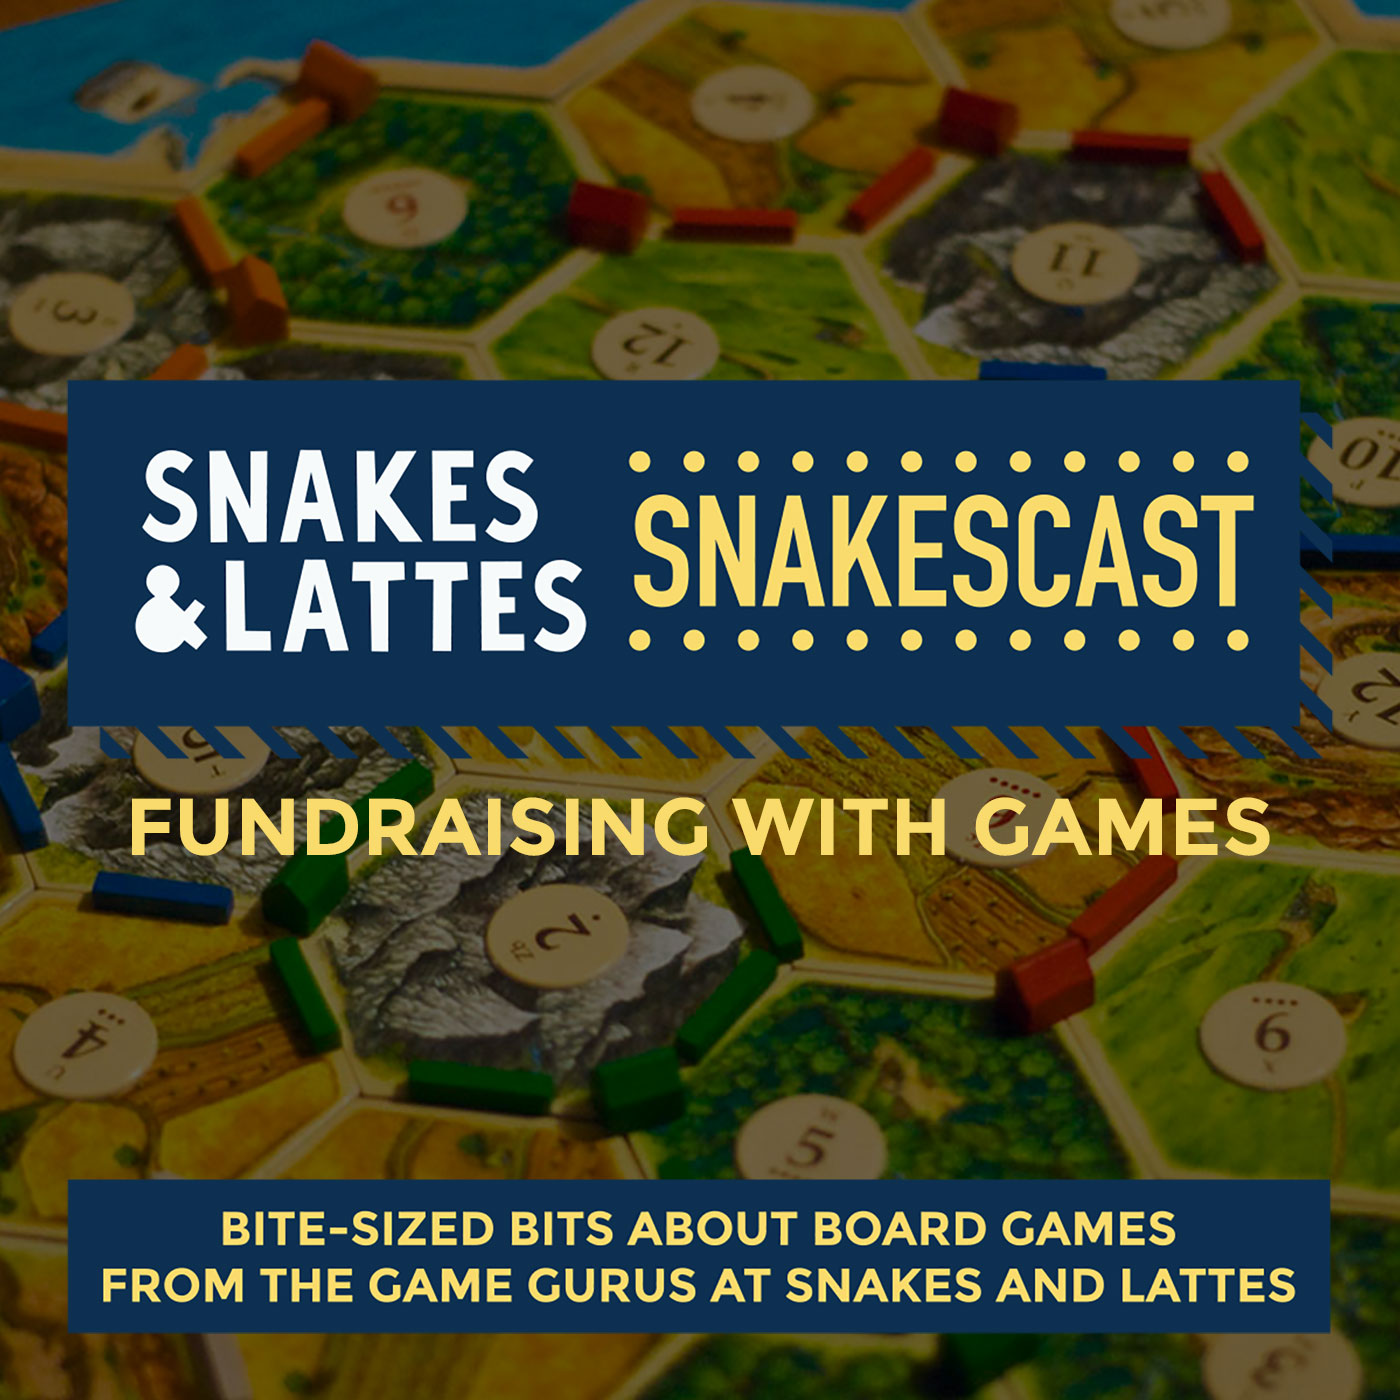 Fundraising with games, Part 1 - Introducing the Catan-a-thon Against Cancer